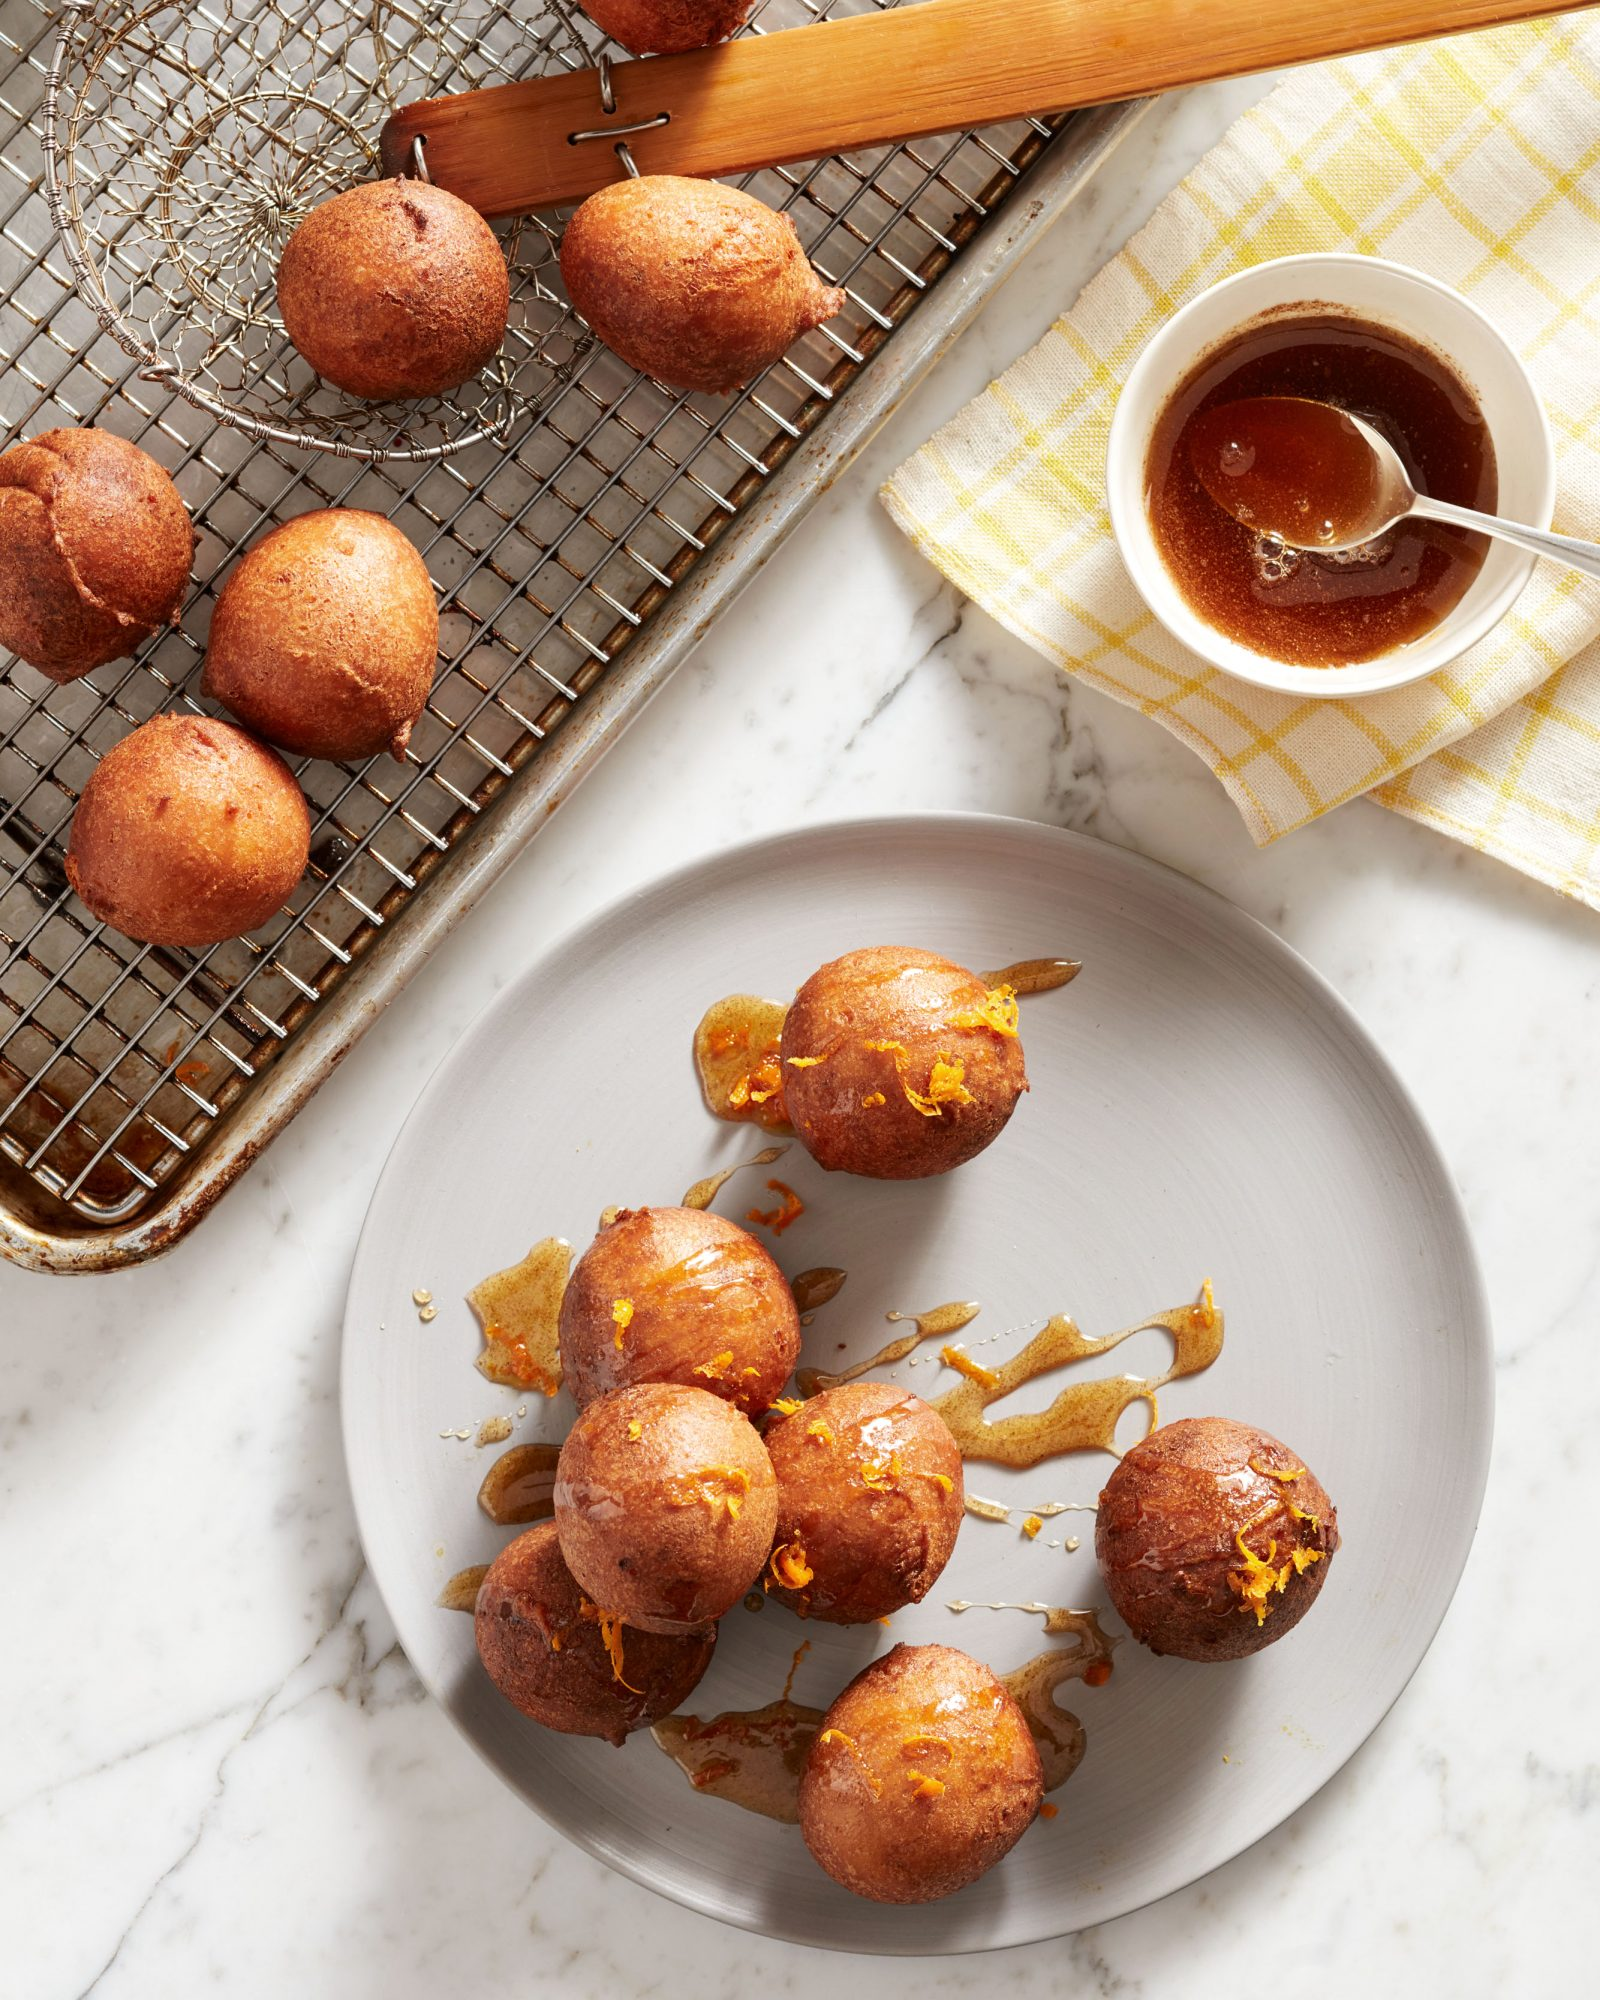 Ricotta Fritters with Maple-Cinnamon Drizzle